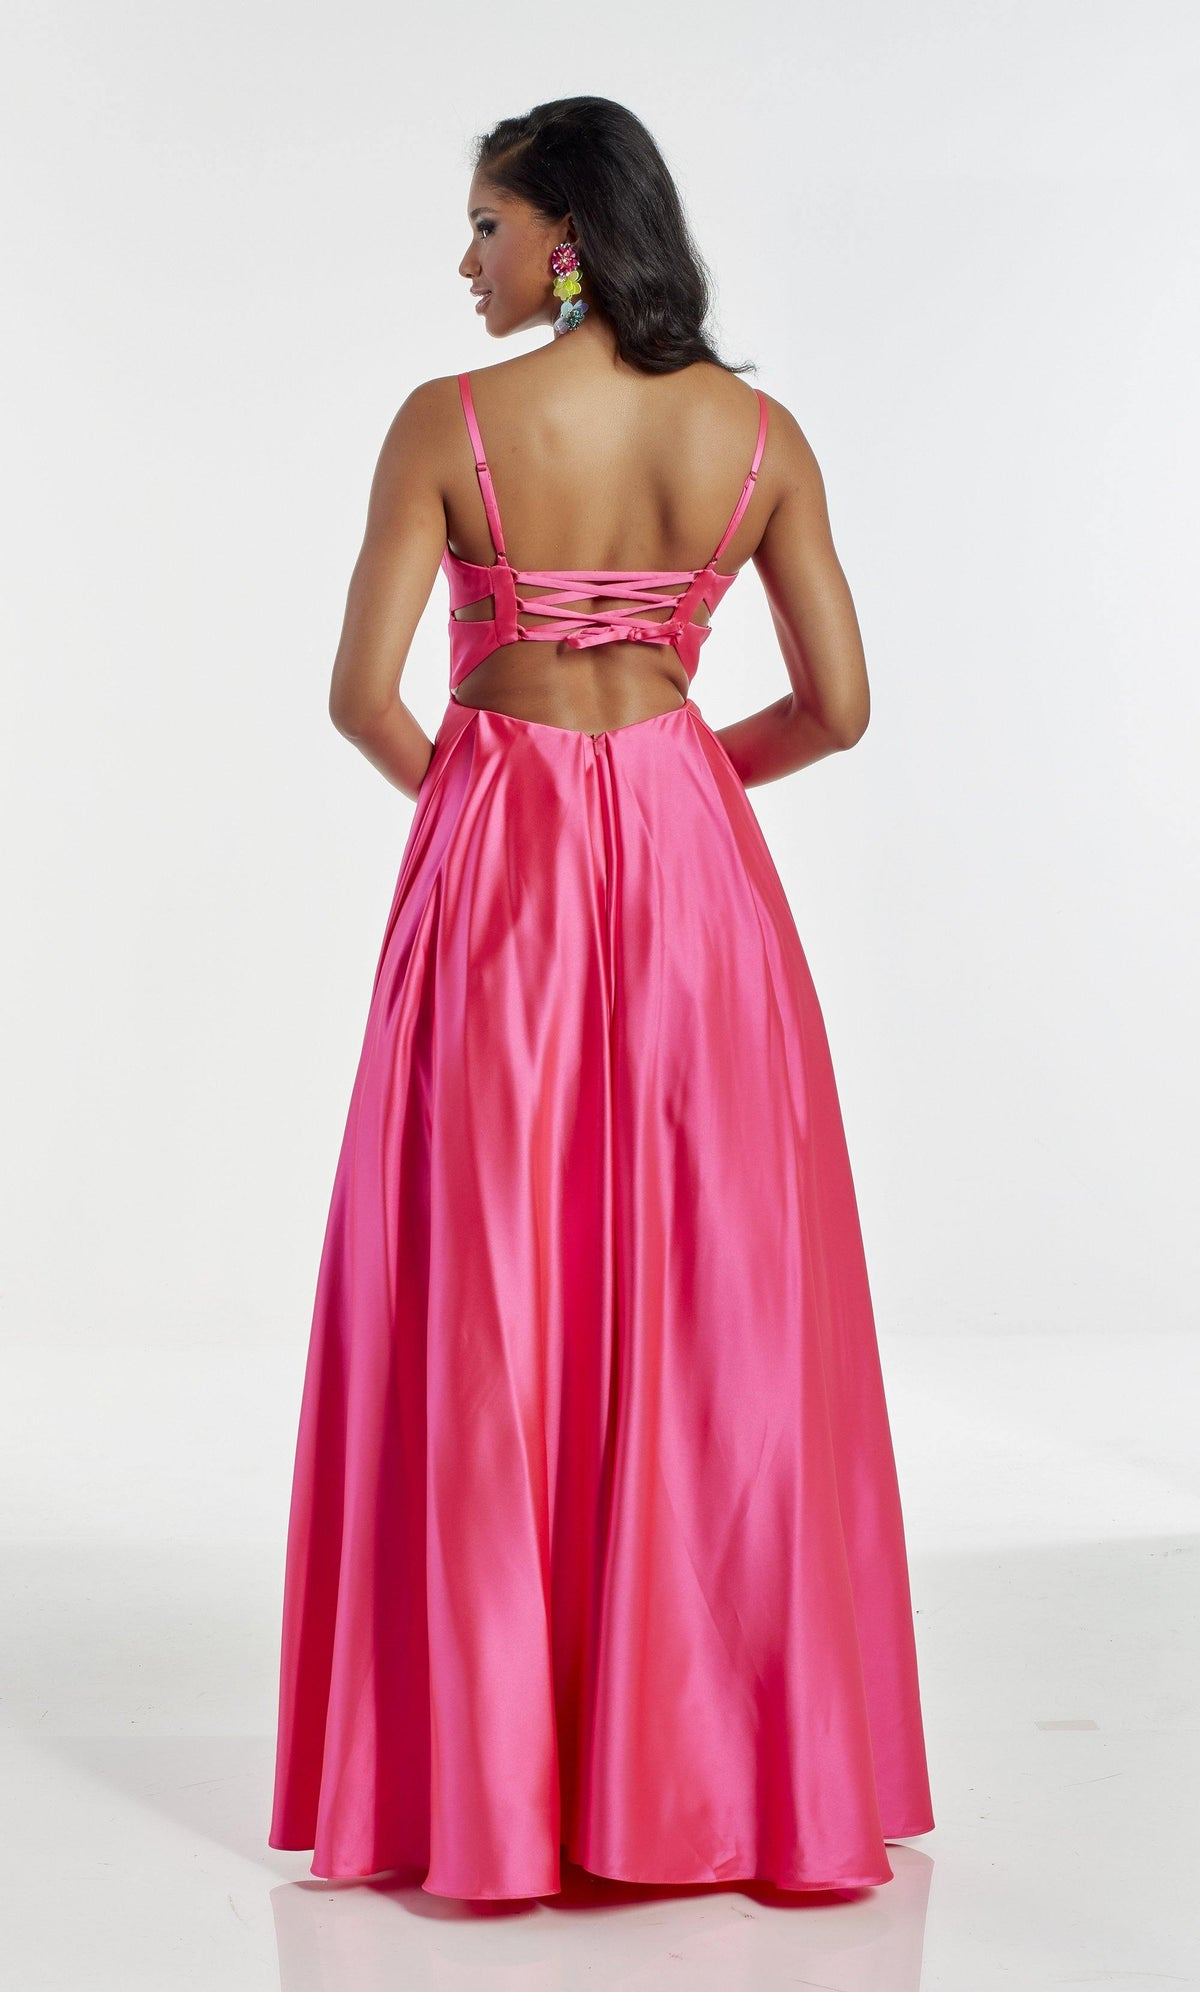 Barbie Pink wedding guest dress with a strappy back and adjustable straps